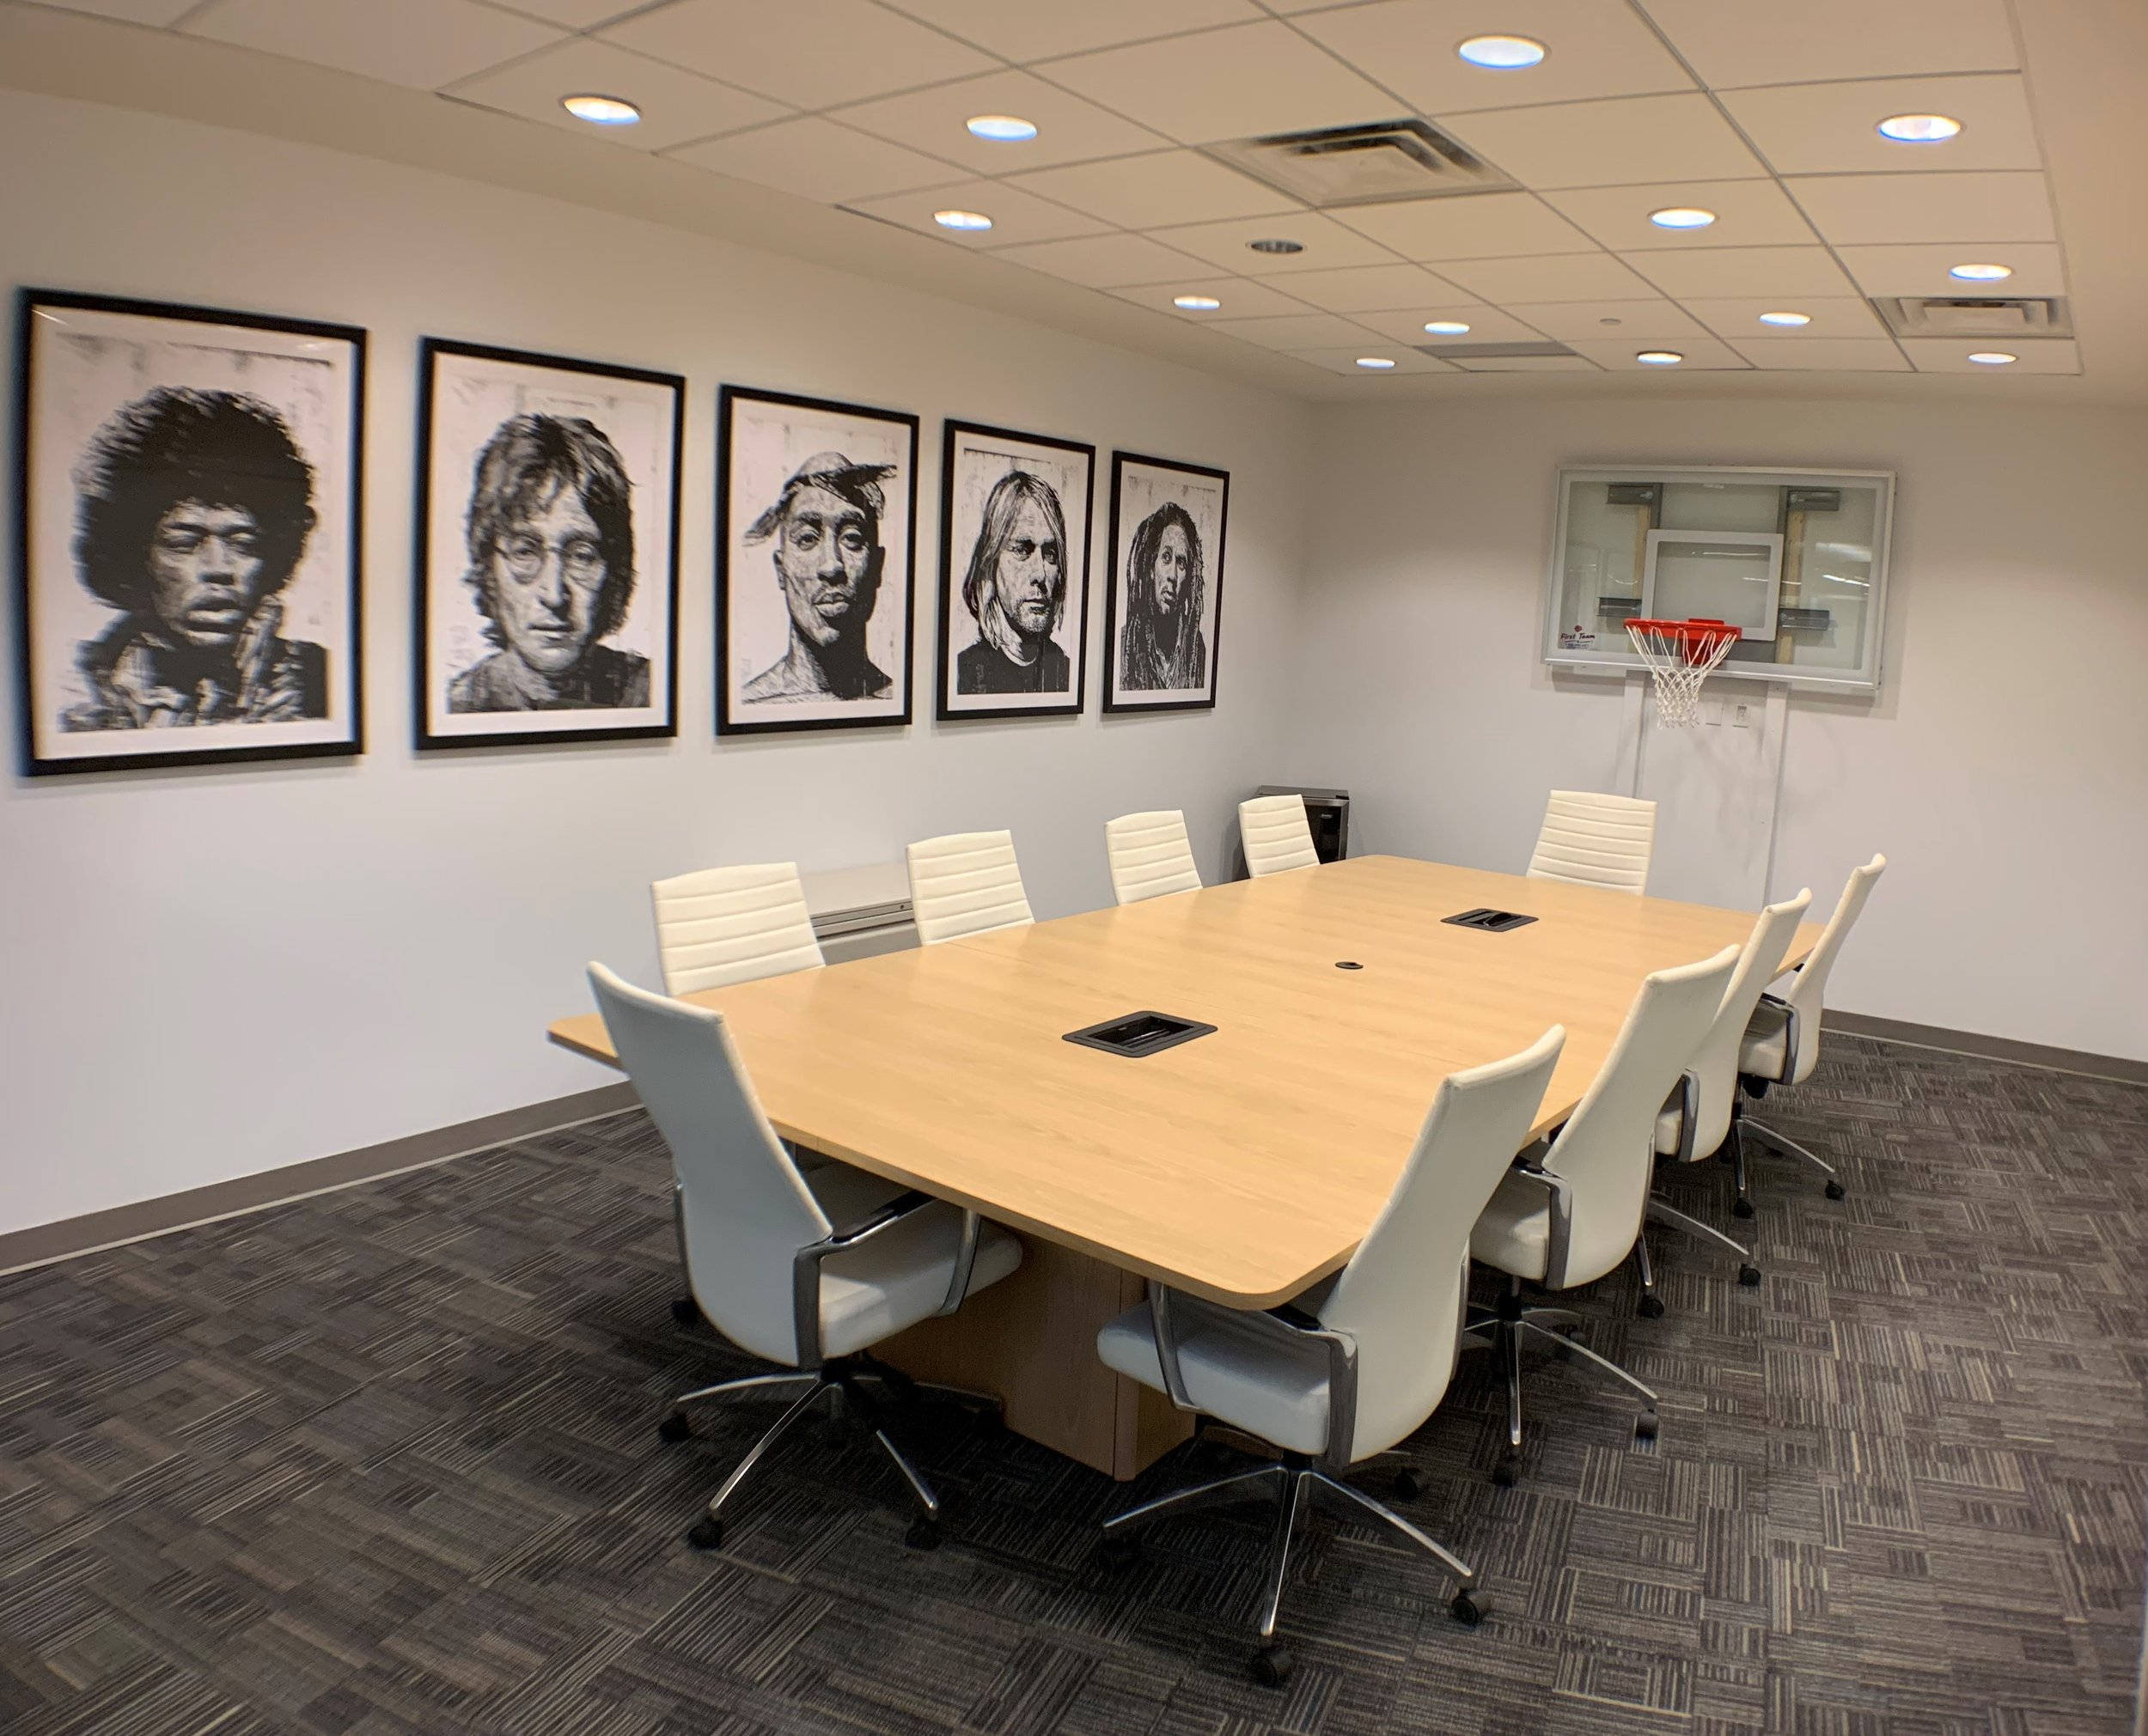 Naismith Room - Named after the inventor of basketball, this meeting room seats up to 10 guests with extra space for food and beverages.